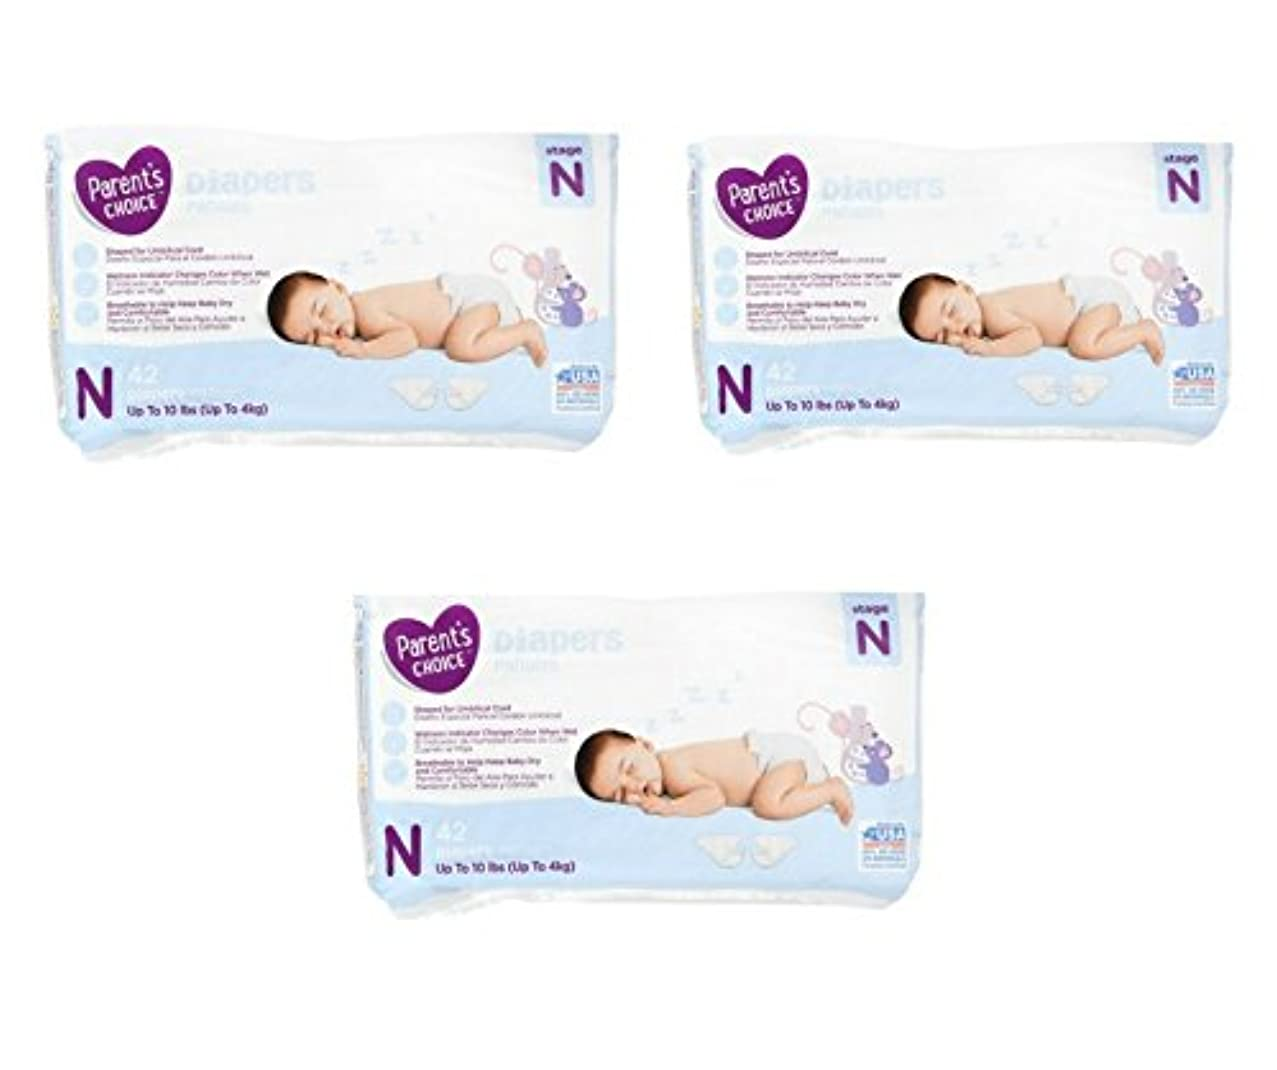 Pack of 3 Parent's Choice Diapers, Size Newborn, 42 Diapers